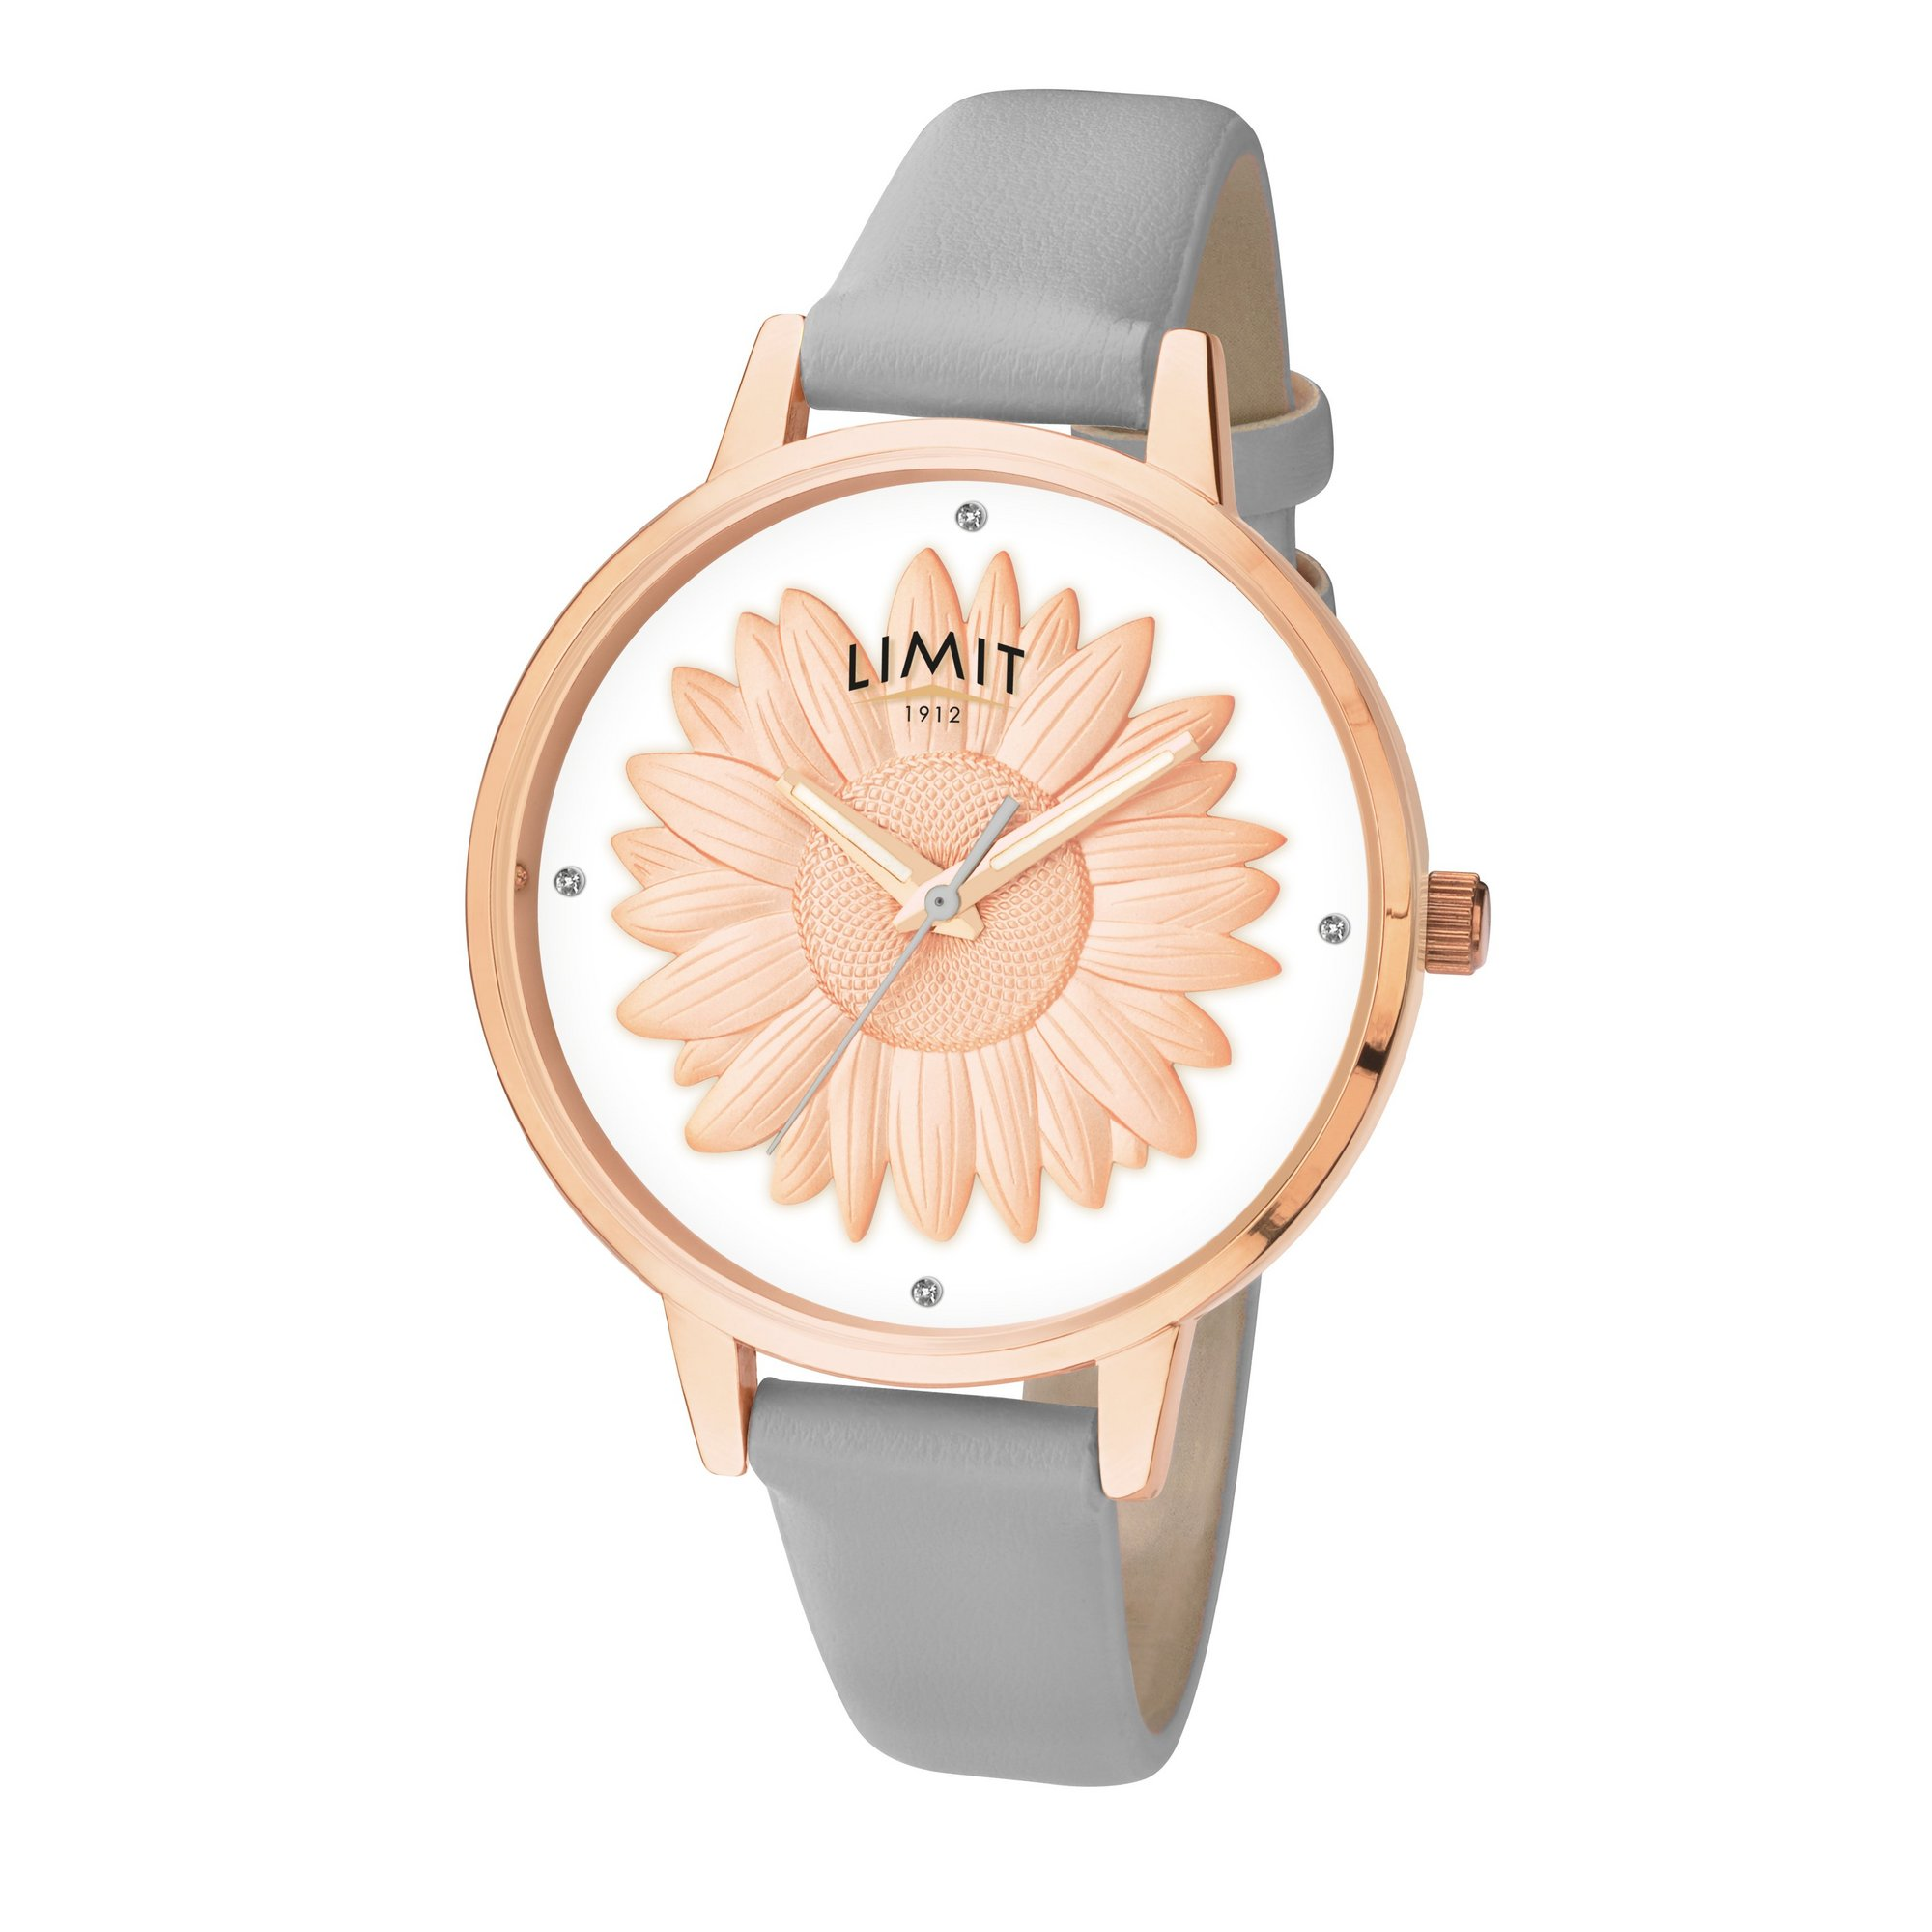 Image of Limit Ladies Rose Gold Plated Leather Strap Watch